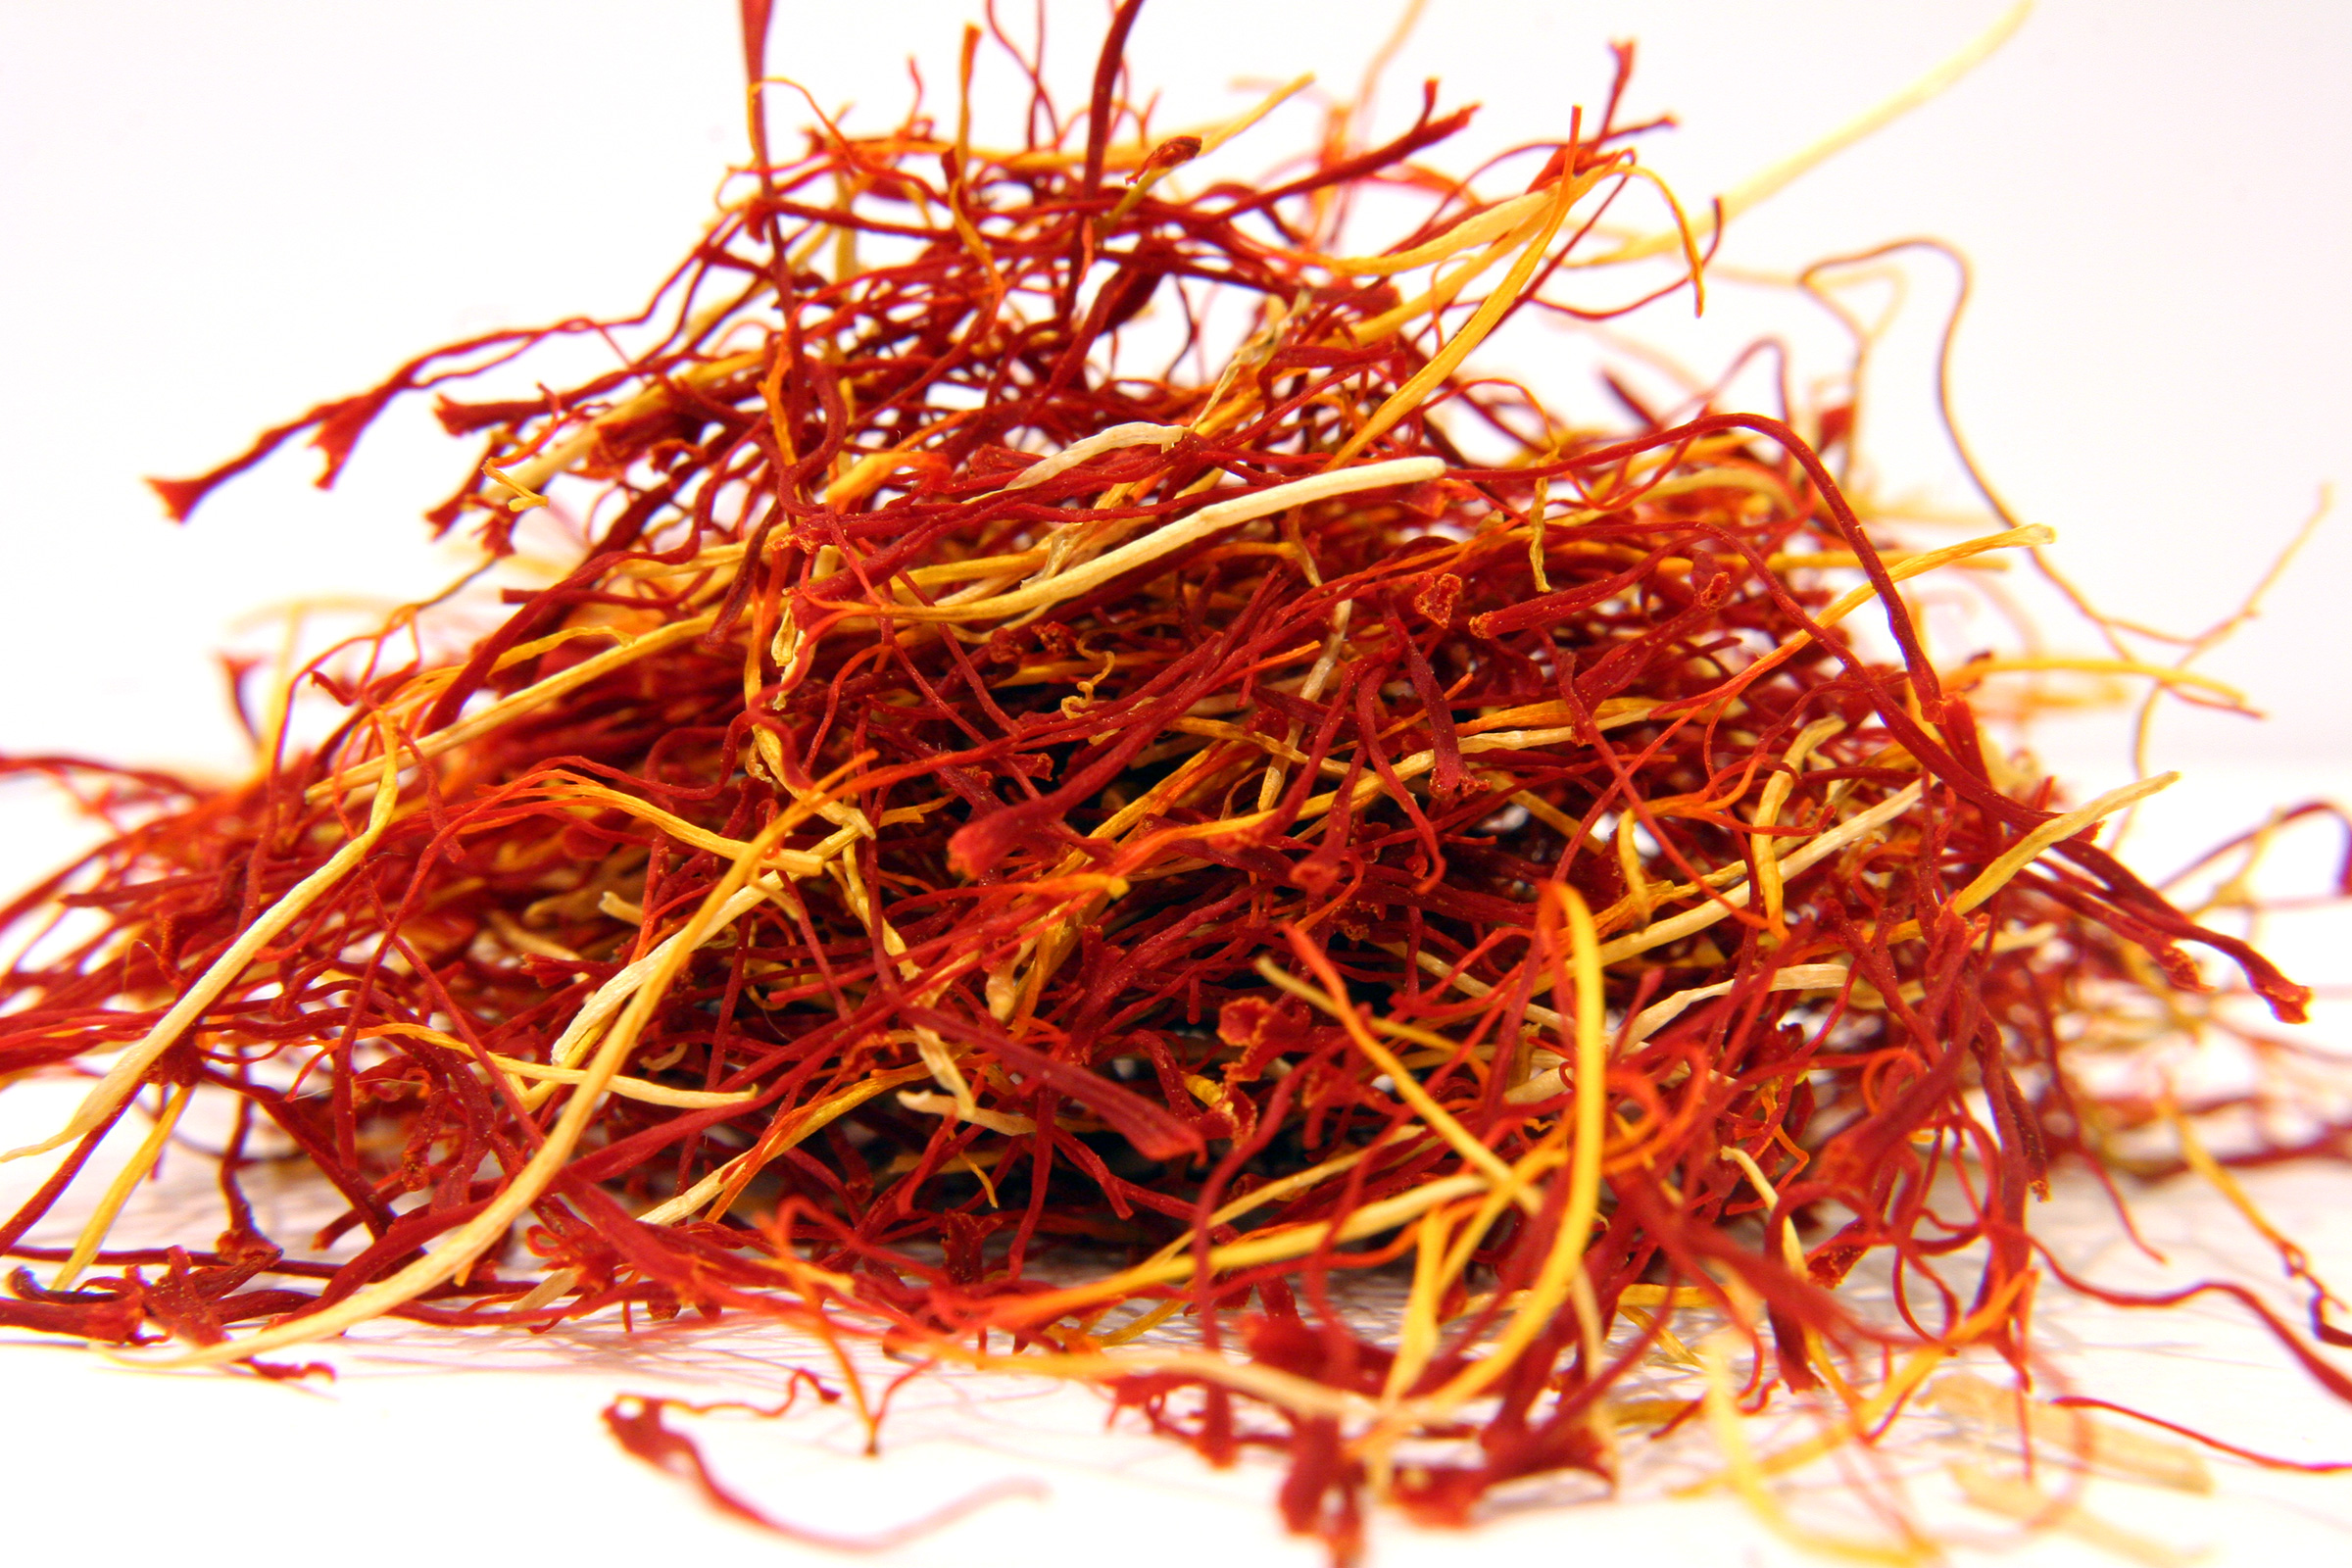 Saffron can protect sight